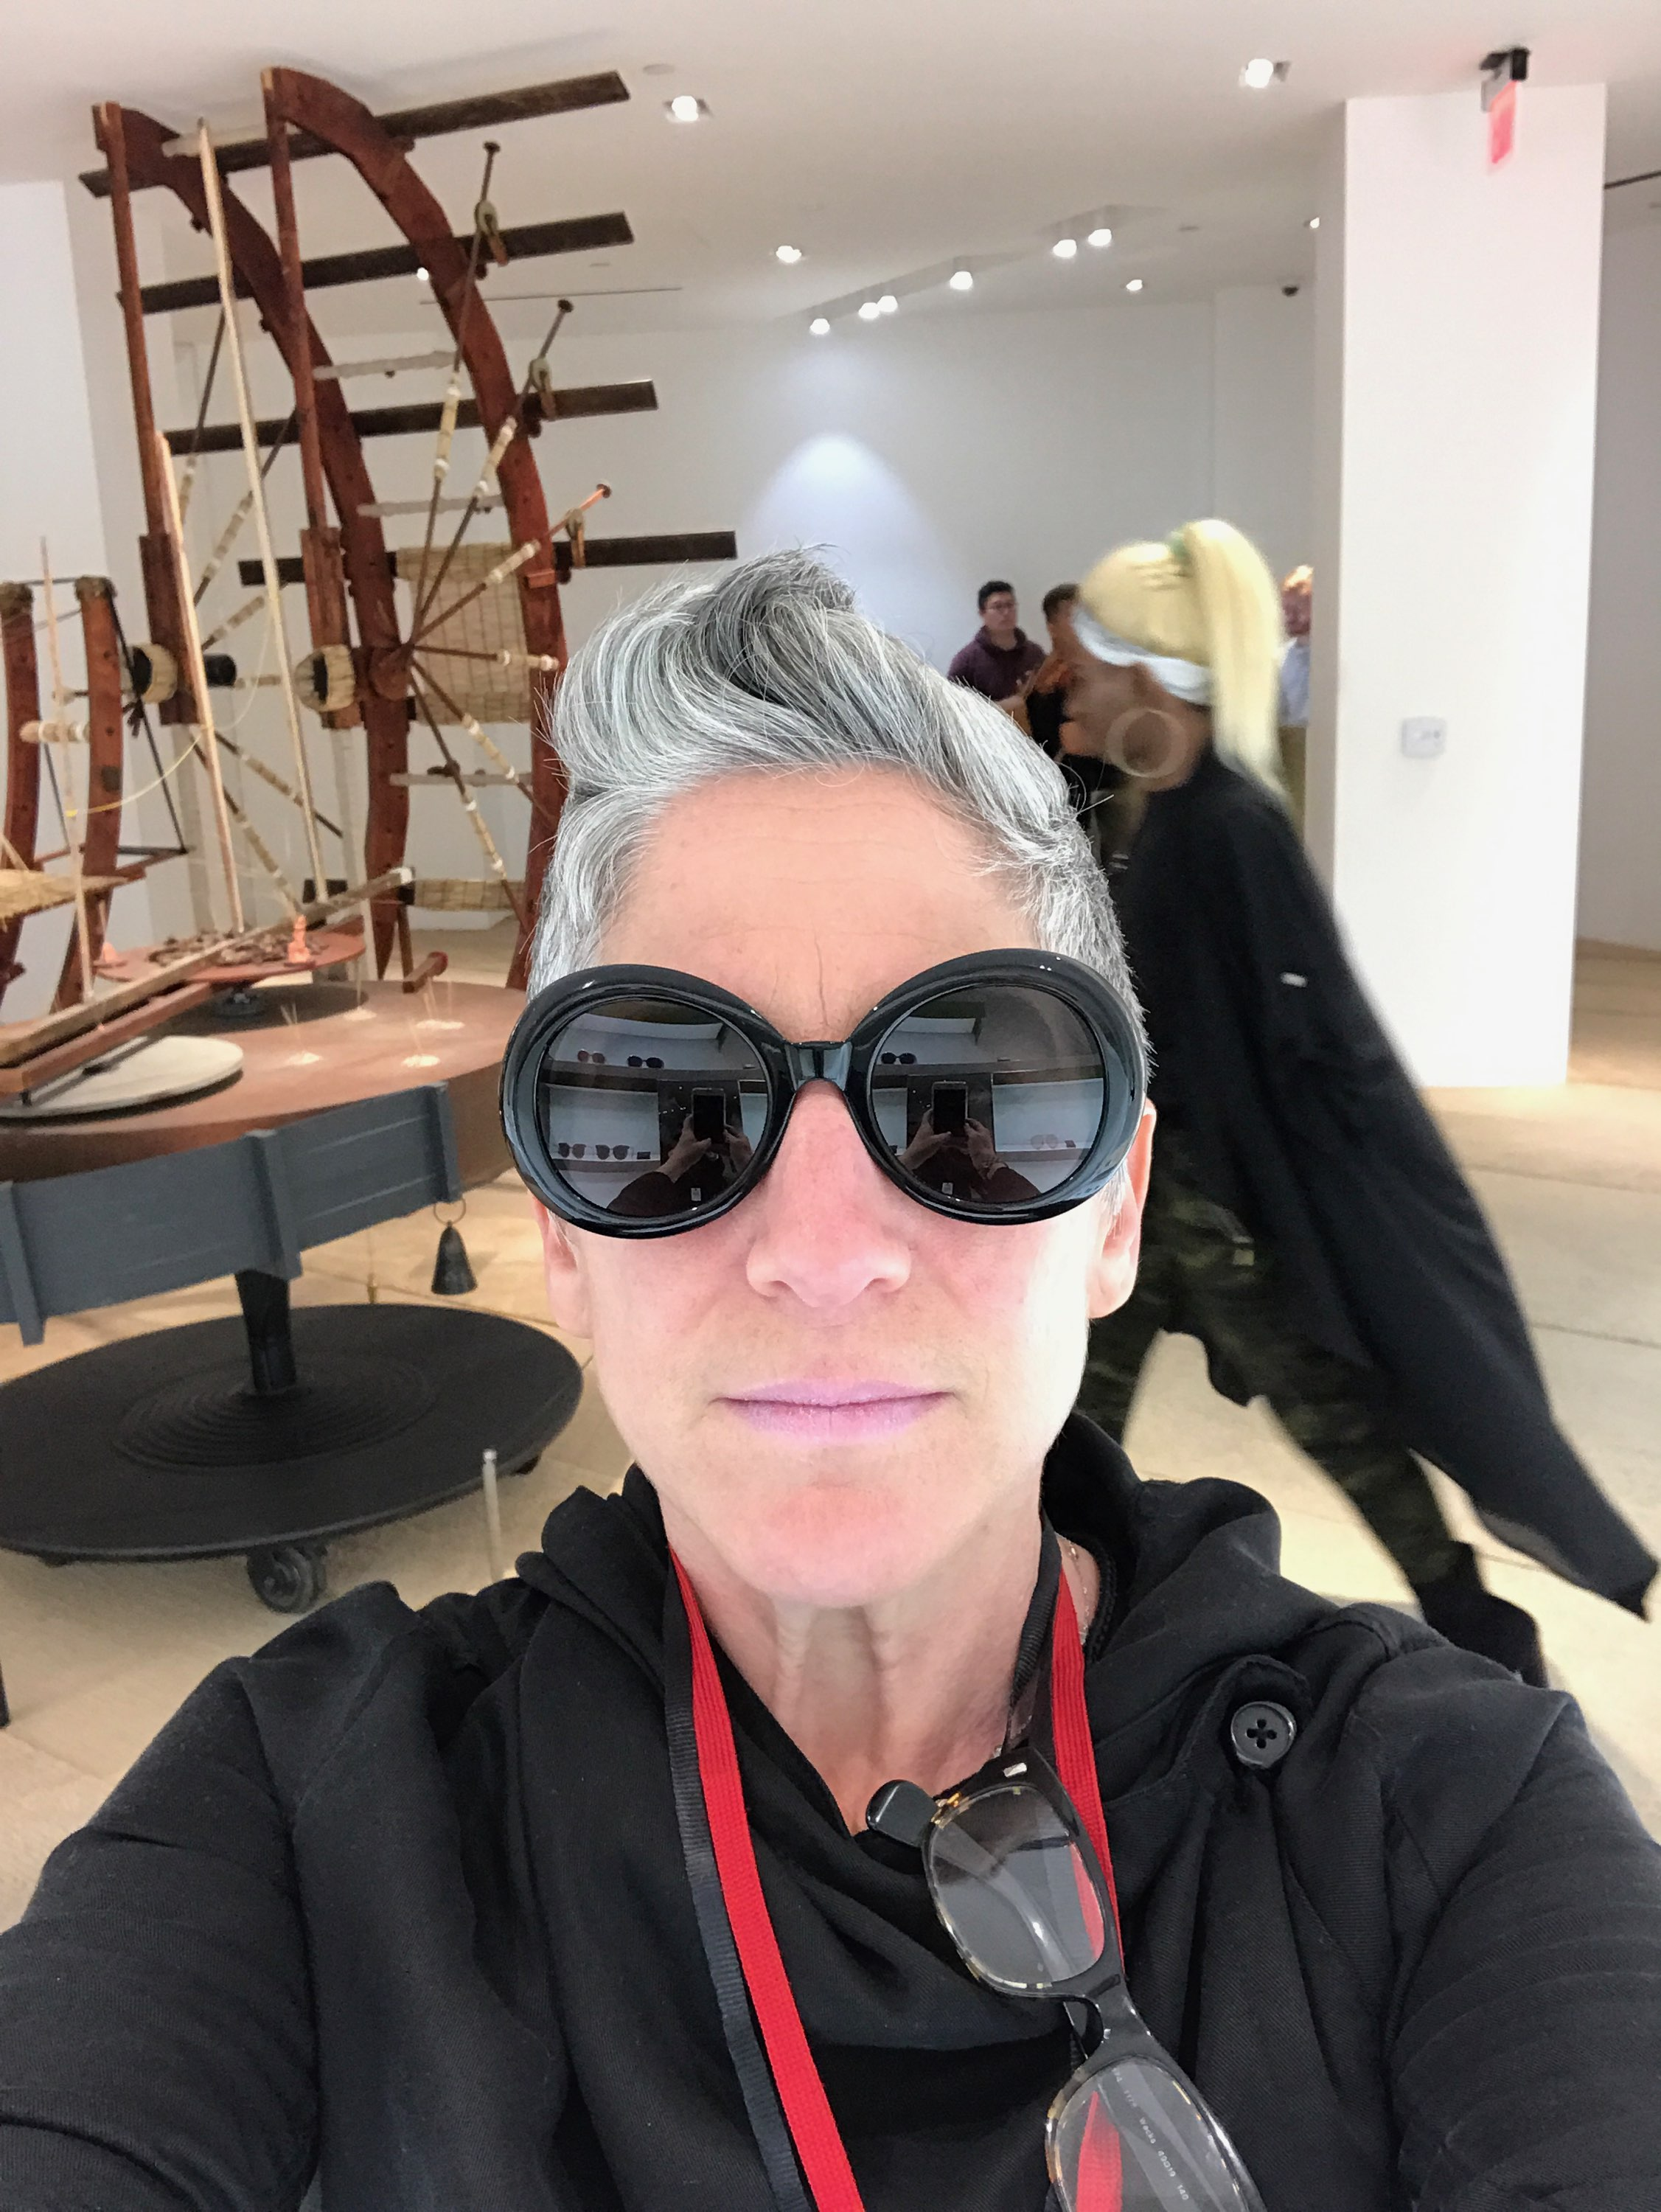 """MICHELLE STERN (Associate Producer) was the co-founder/producer of GAle GAtes et al., the line producer of """"Curran Under Construction"""" in SF, producer of the world's first mind-controlled flying experience, The Ascent, (by Yehuda Duenyas), and was the COO of its parent company, Mindride, winning a 2016 Emmy Award for their work on the PSA, """"Love Has No Labels."""" She was line producer & company manager for Taylor Mac's A 24-Decade History of Popular Music, and produced the street installations for Diana Oh's {my lingerie play}. She's worked with Julie & Mat since 2014."""